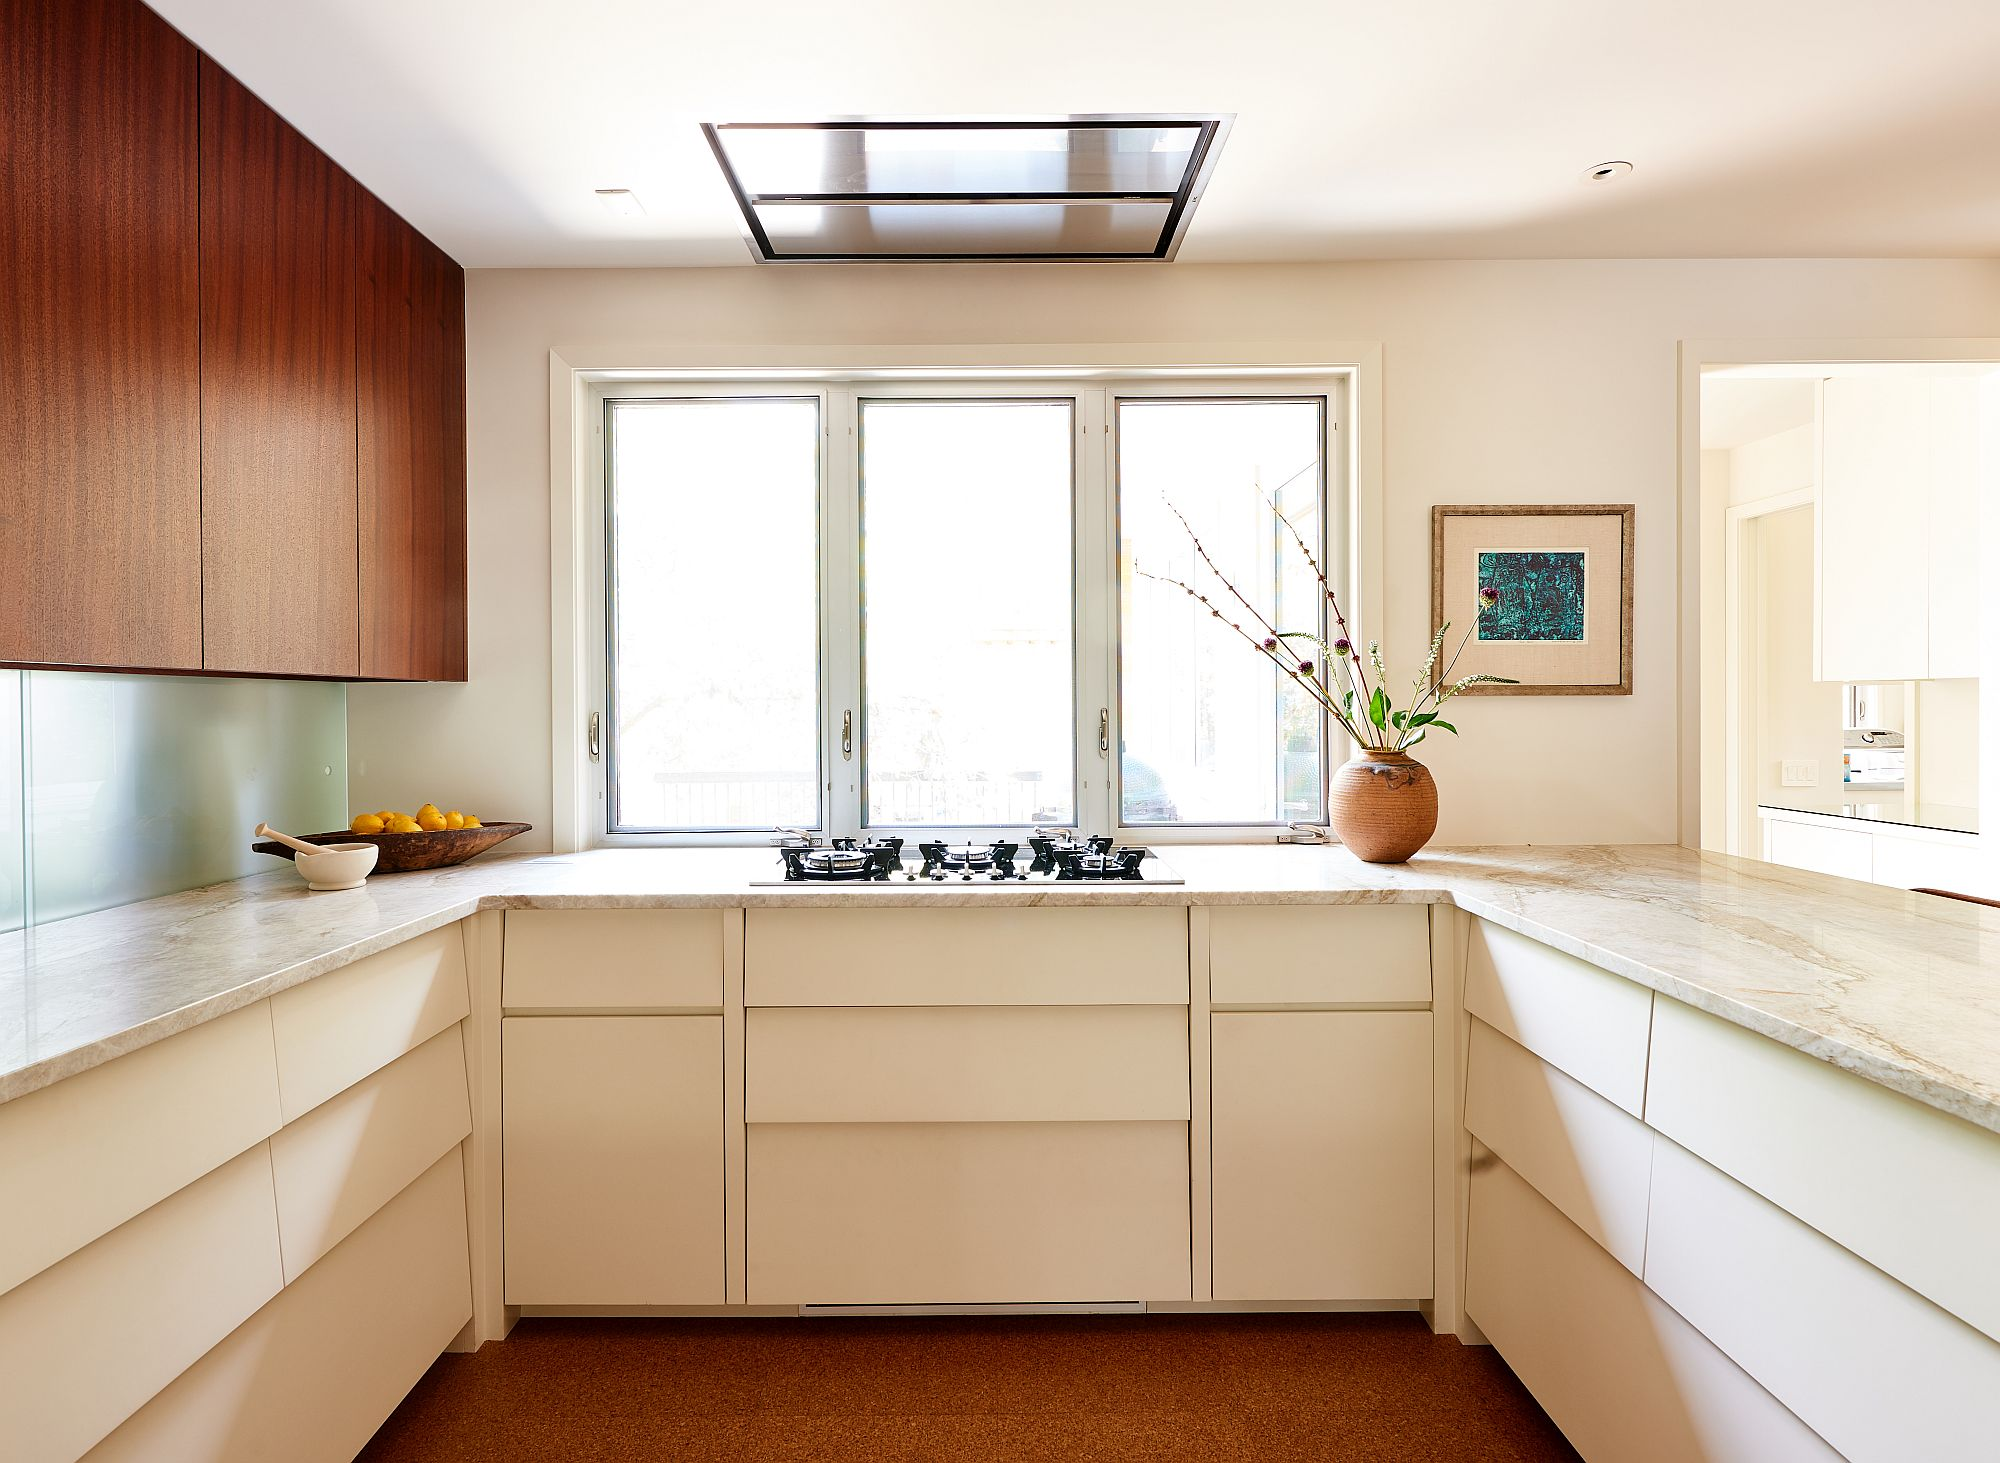 Windows bring natural light into the spacious kitchen with cork floors